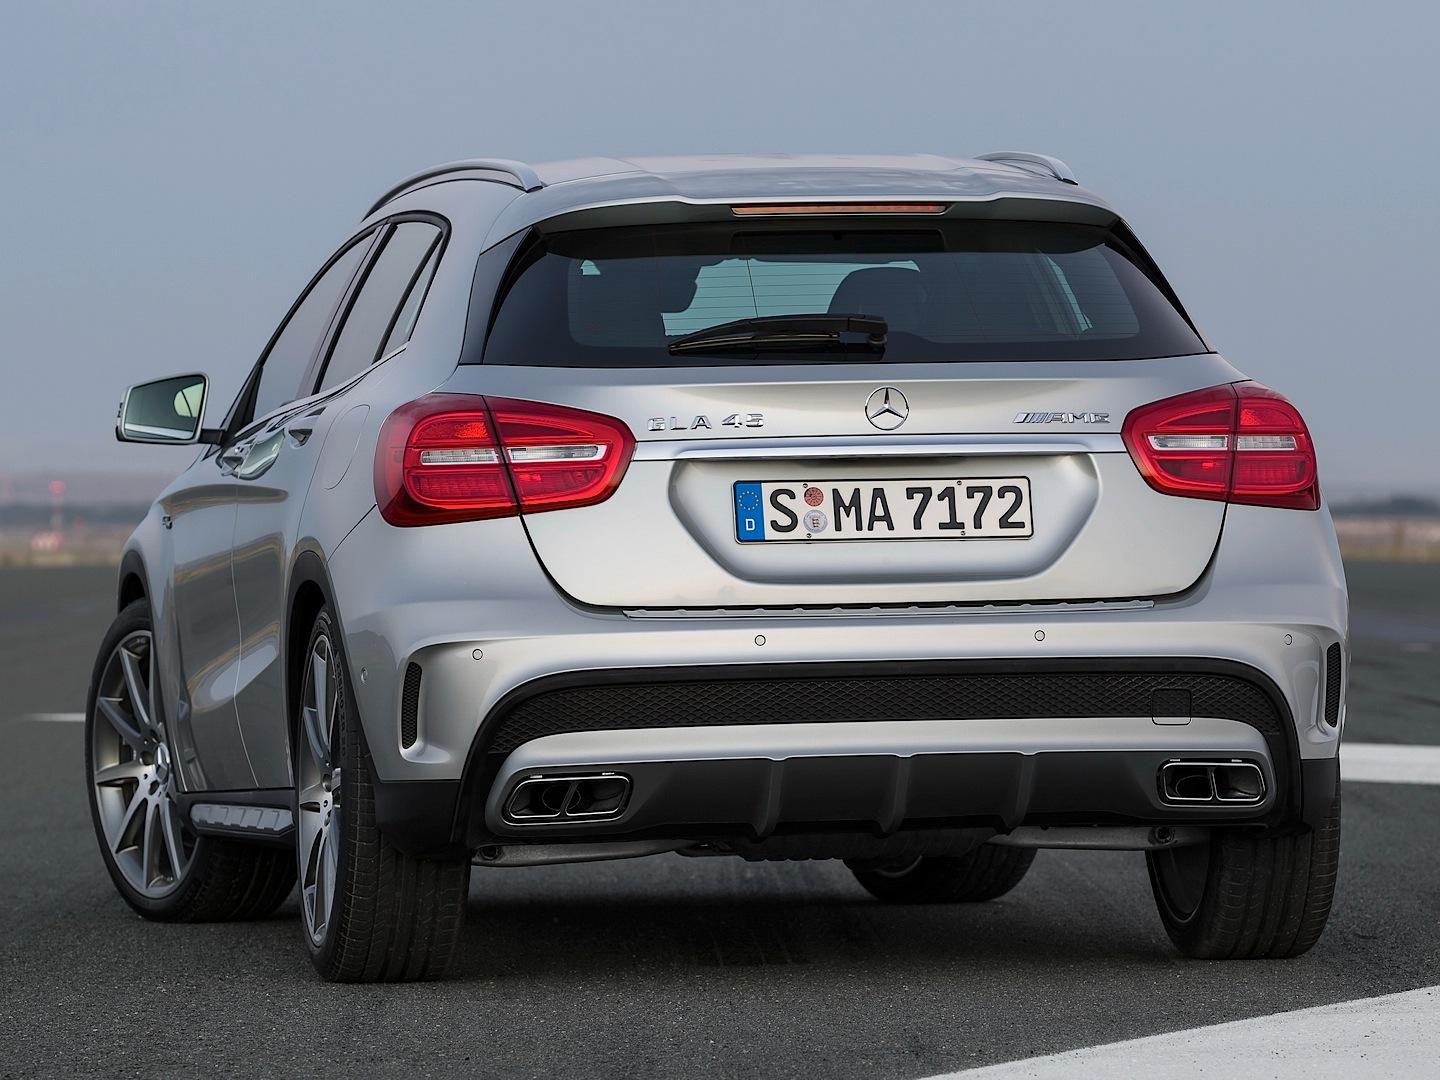 GLA 45 AMG Apparently Laps The Nurburgring in 8:11 Minutes - autoevolution